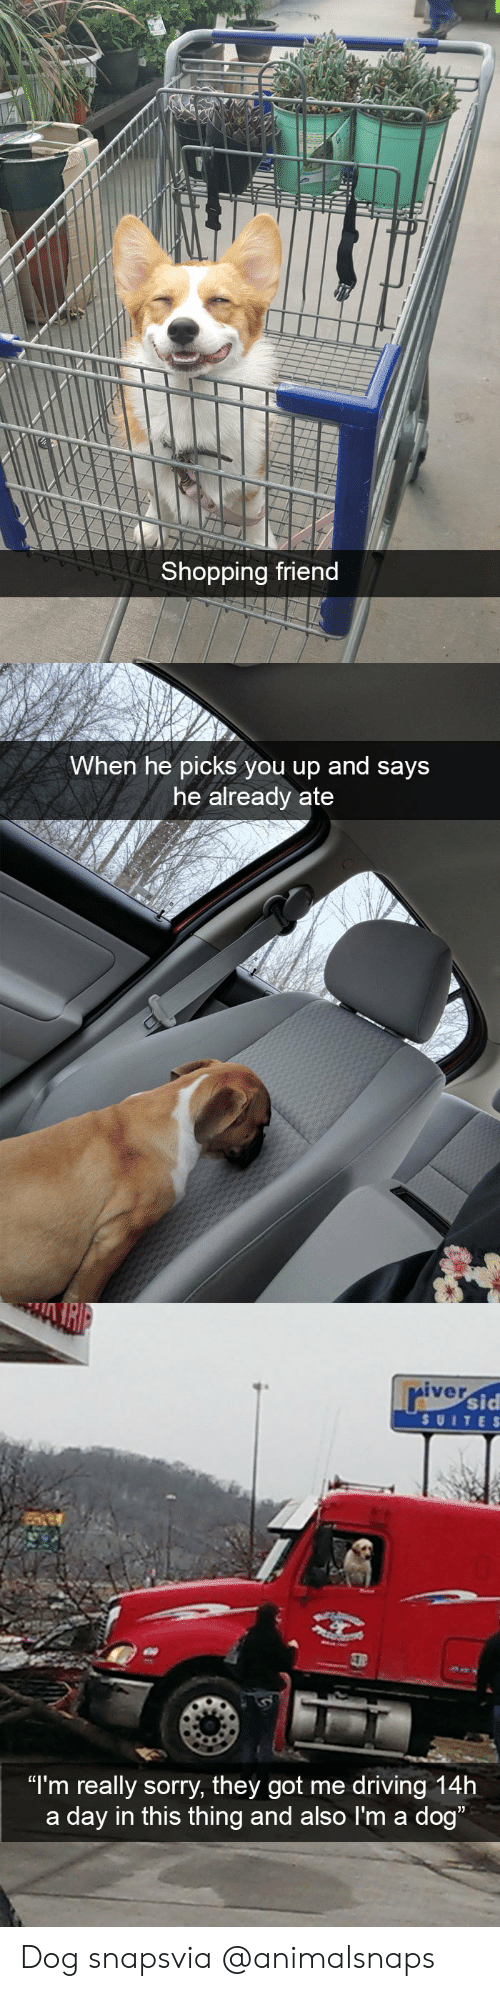 "suite: Shopping friend   When he picks you up and says  he already ate   iver  sid  SUITE S  ""I'm really sorry, they got me driving 14h  a day in this thing and also I'm a dog Dog snapsvia @animalsnaps"